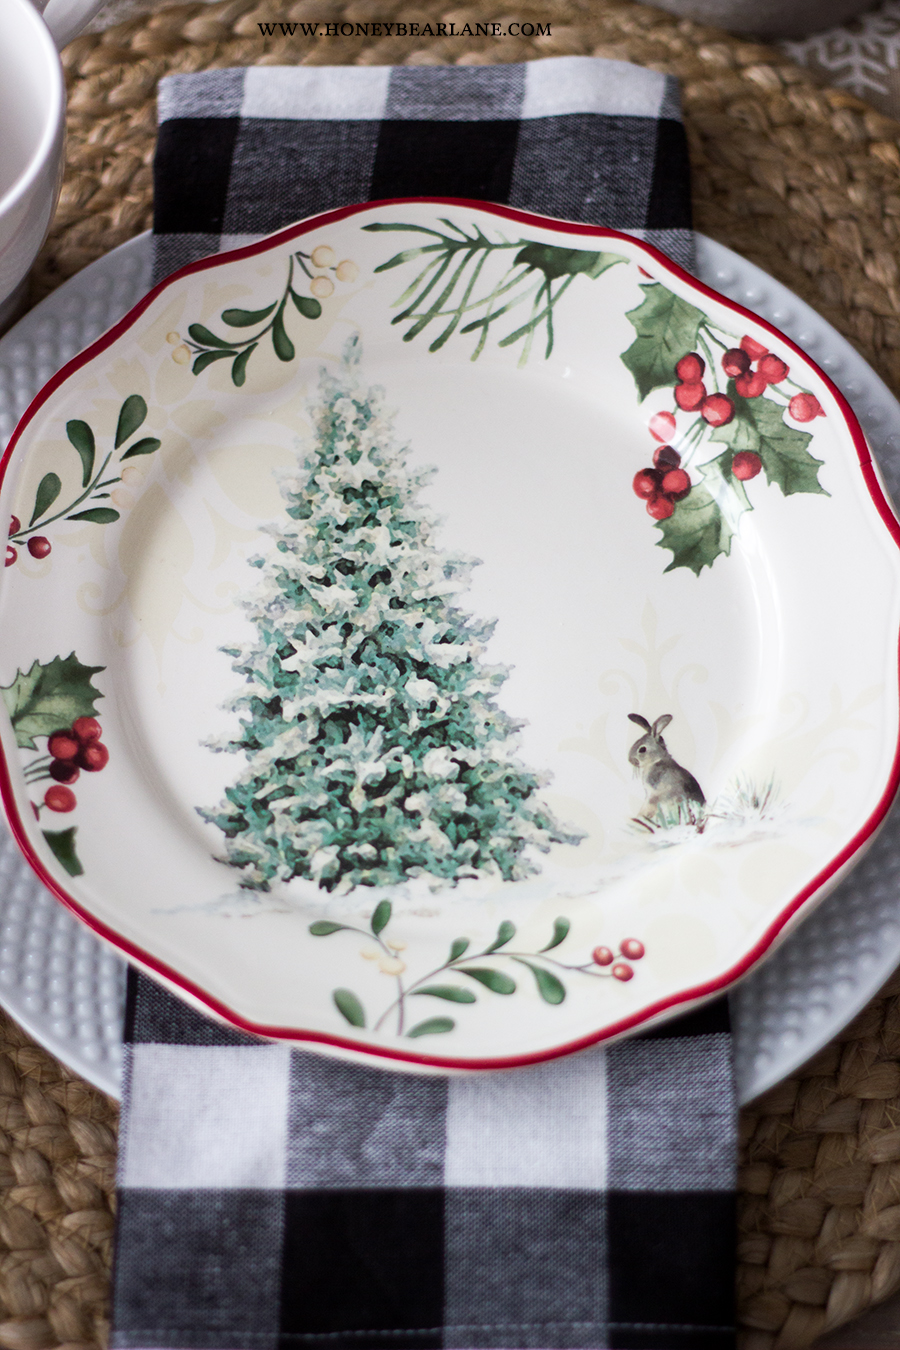 Vintage Christmas Table Setting Honeybear Lane